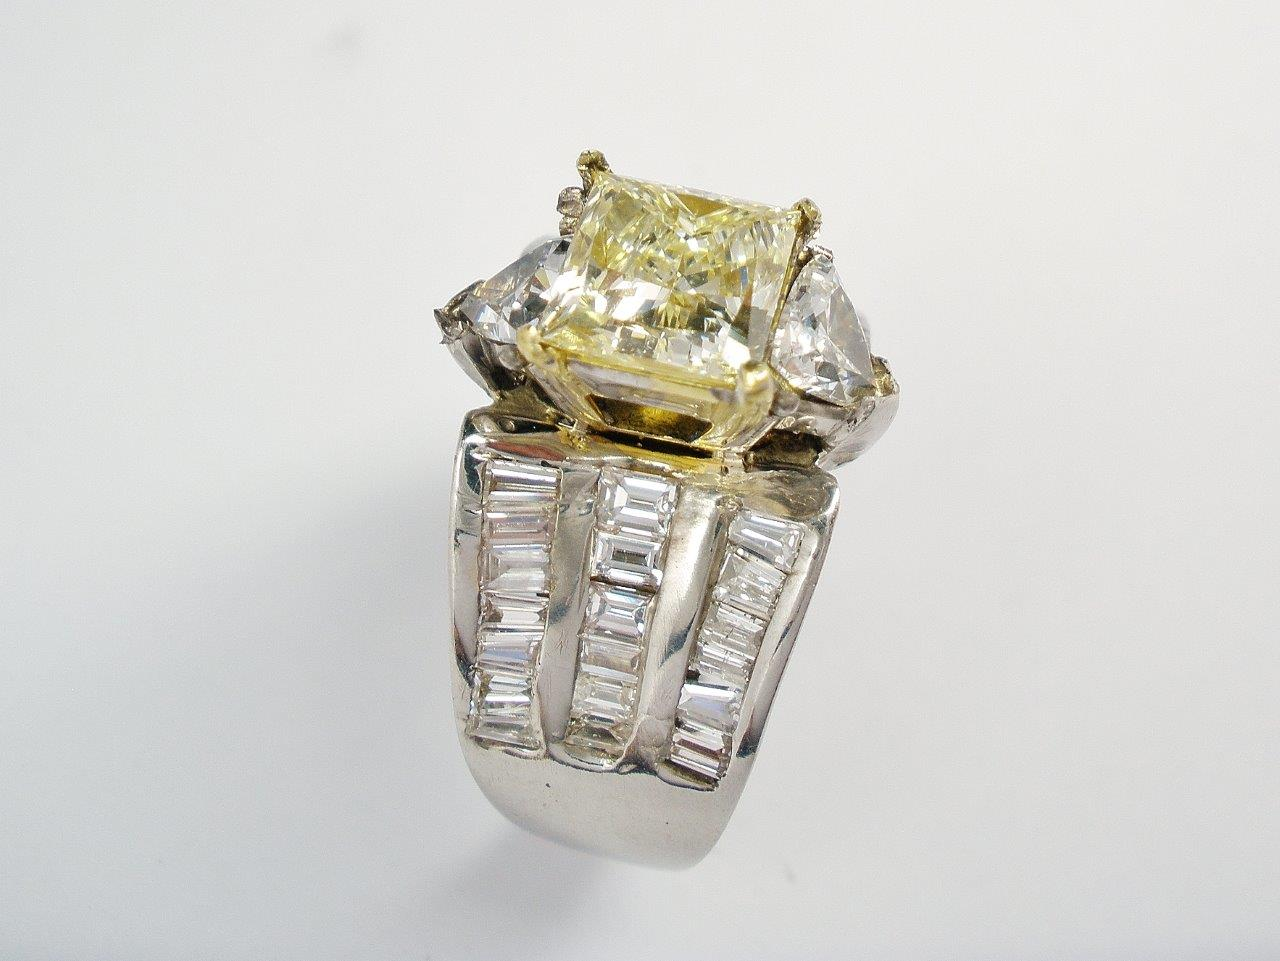 A 2ct. champagne coloured princess cut diamond with a whitetrilliant cut diamond set above and below and a broad 18ct. white gold shank channel set with 3 rows of baguette diamonds.